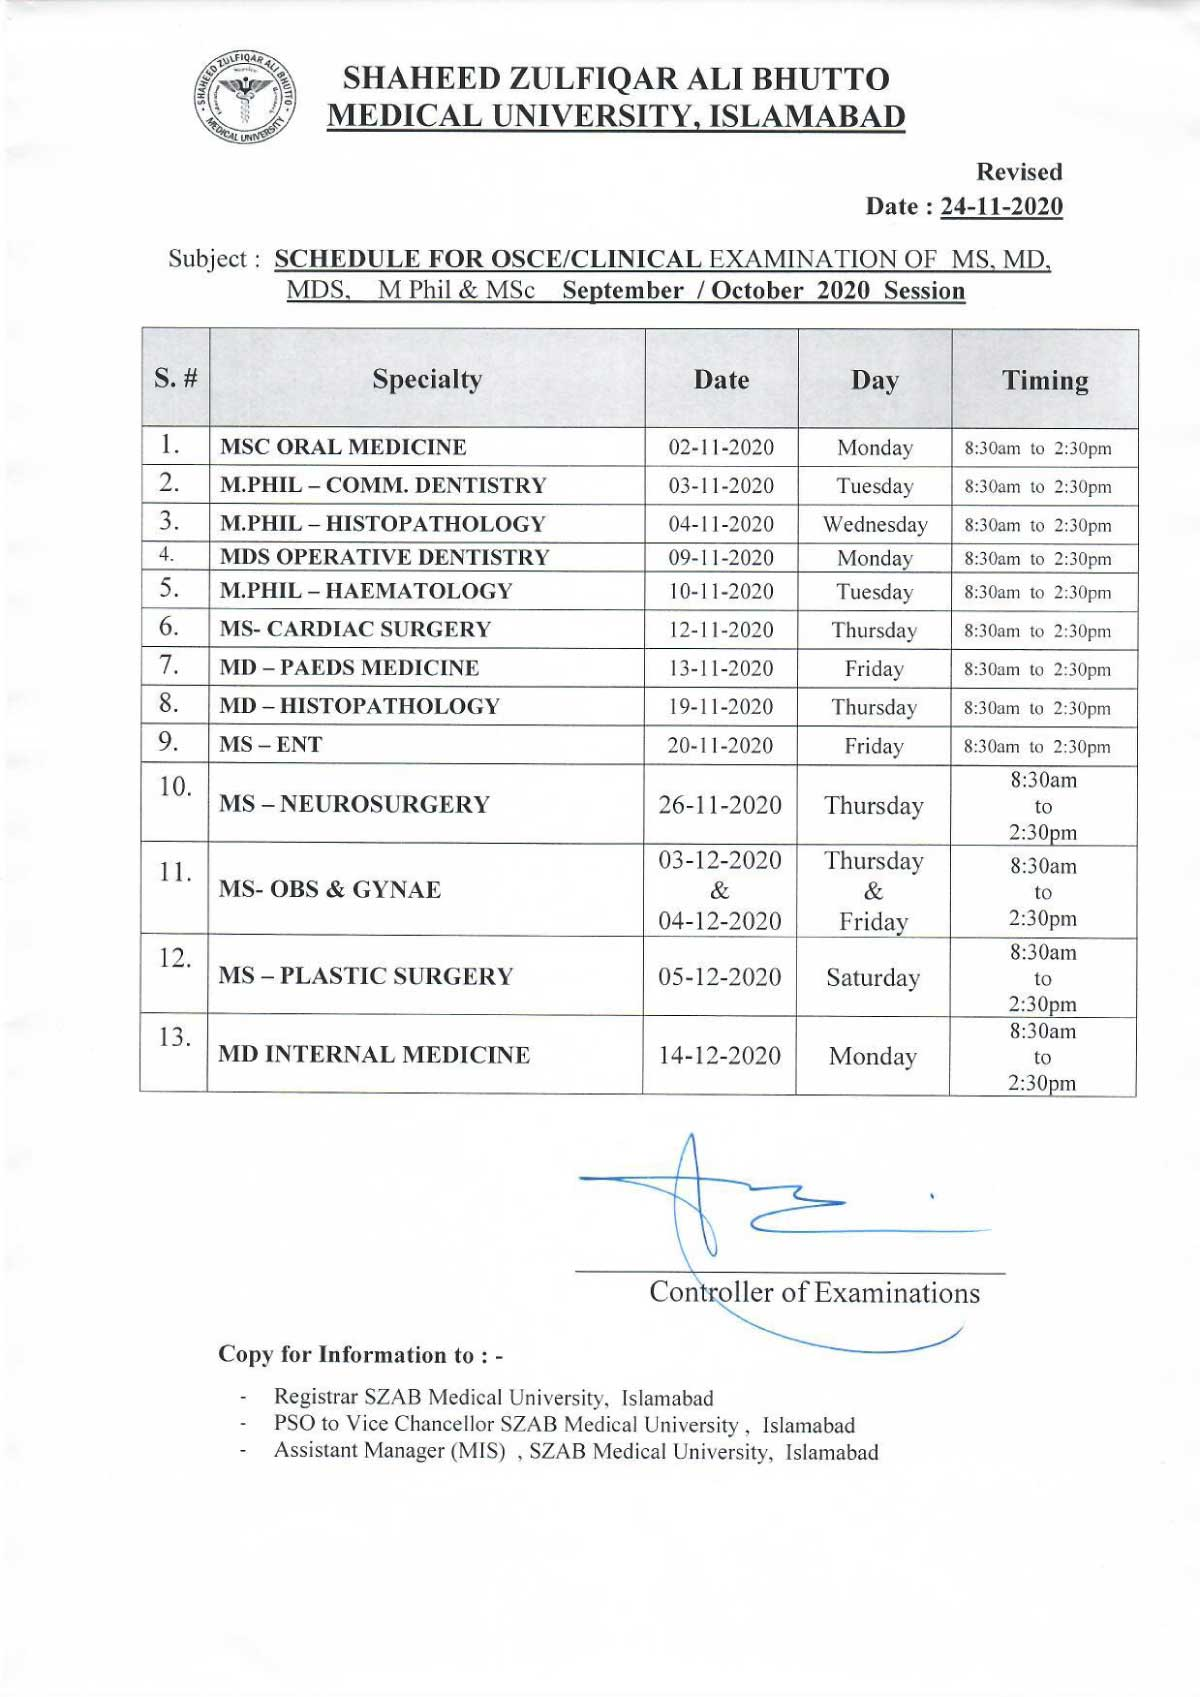 Revised schedule of Clinical Examination - Revised on 24-11-2020